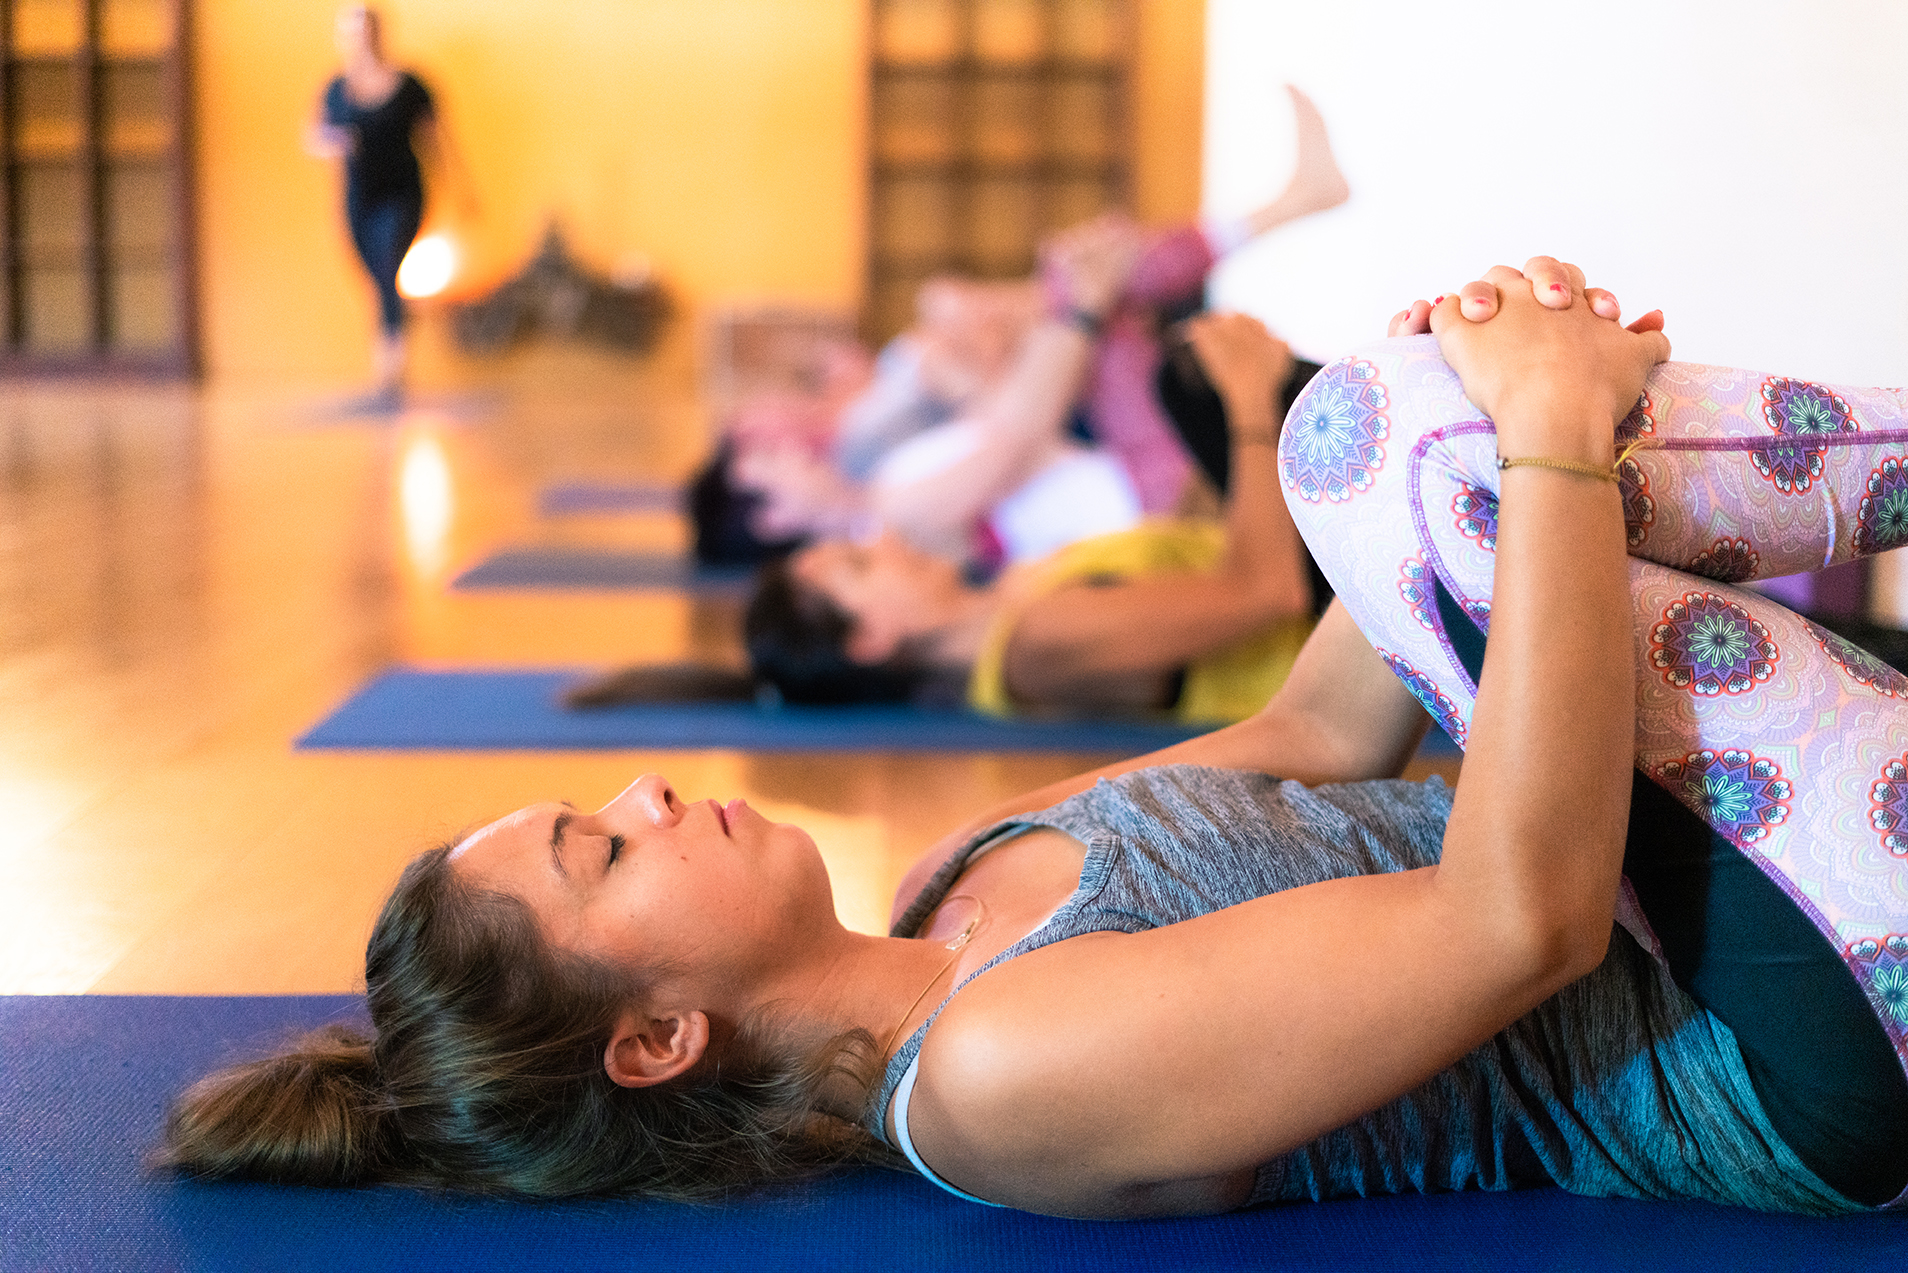 Beginner Basics - Learn the basics ~ limited to under 20 students in a class for safe, guided attentive teaching and instruction.: Yoga breathing: Yoga postural alignment: Activate strength to support flexibility: Develop core strength: Release stress and how to relax